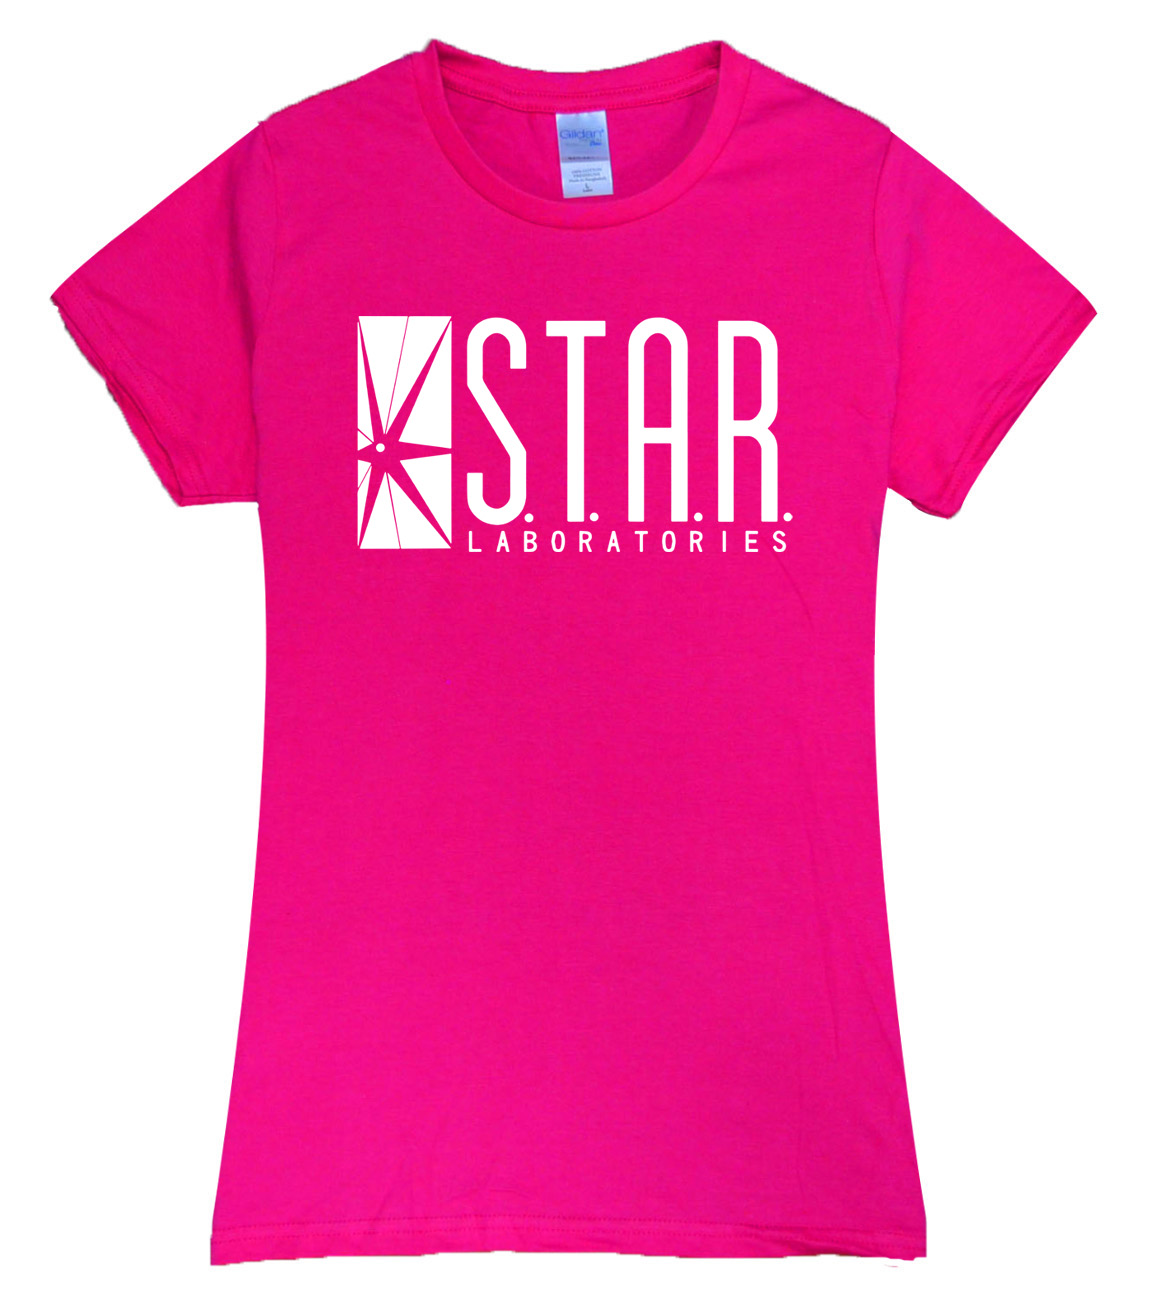 Compare Prices on Pink Shirt- Online Shopping/Buy Low Price Pink ...